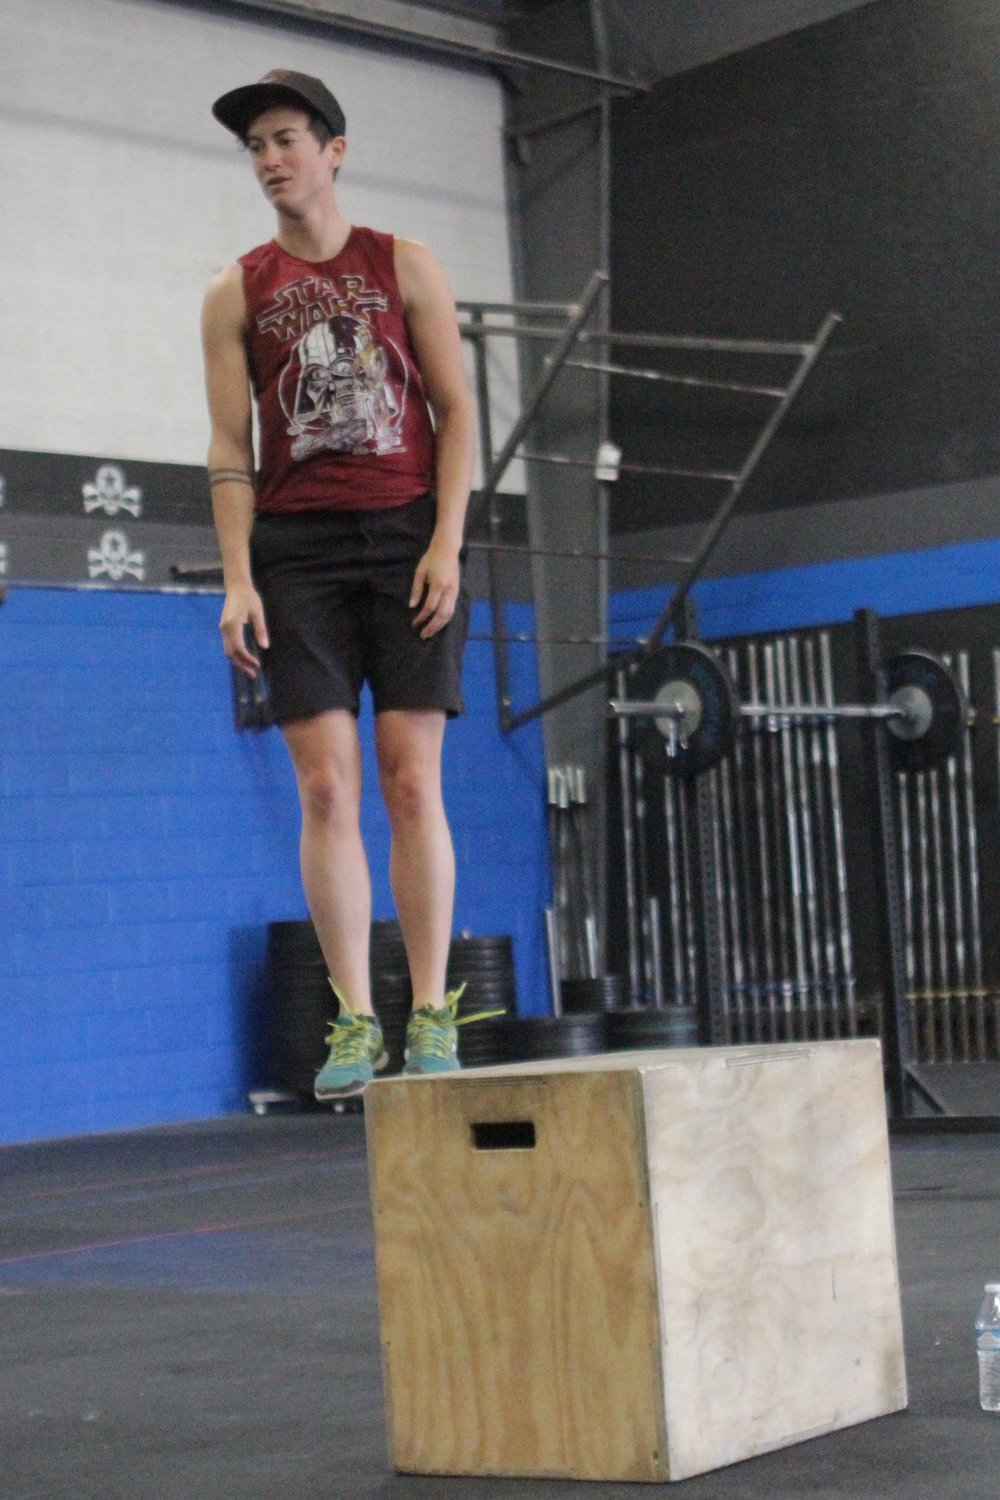 Meanwhile…Megan is levitating to her box… No Big Deal.